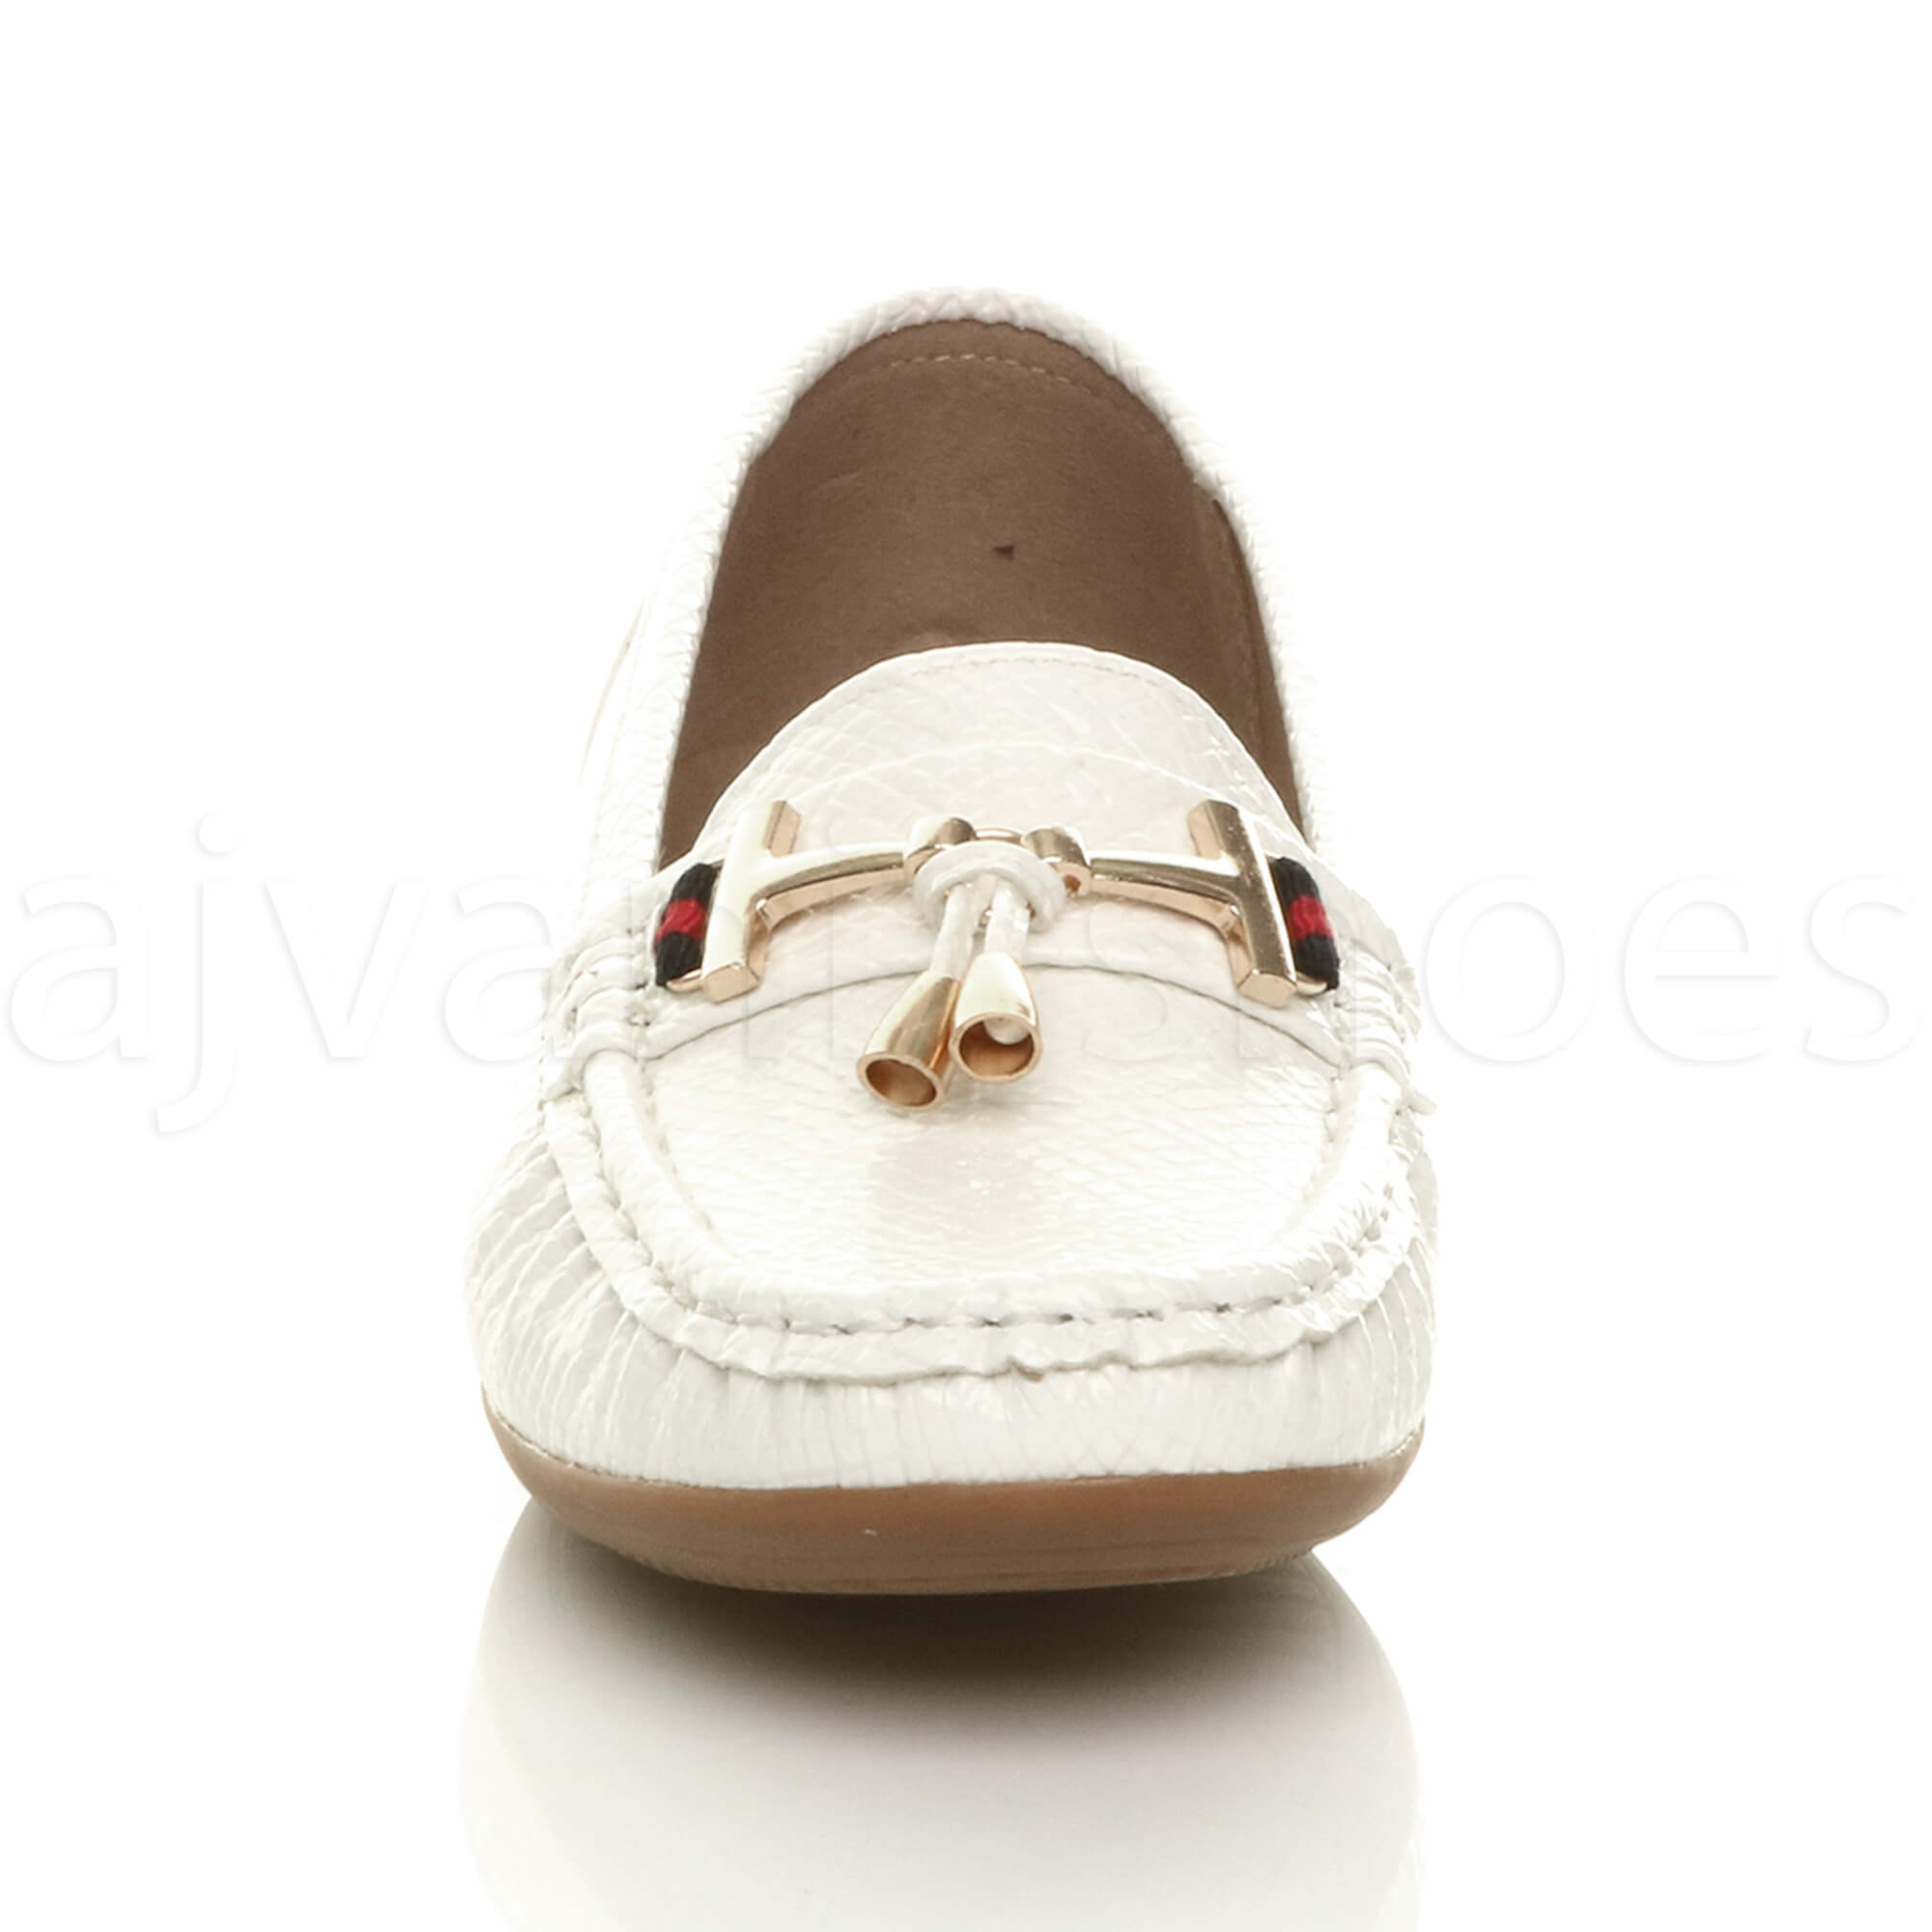 WOMENS-LADIES-LOW-HEEL-WEDGE-LEATHER-TASSEL-LOAFERS-COMFORT-MOCCASINS-SHOES-SIZE thumbnail 55